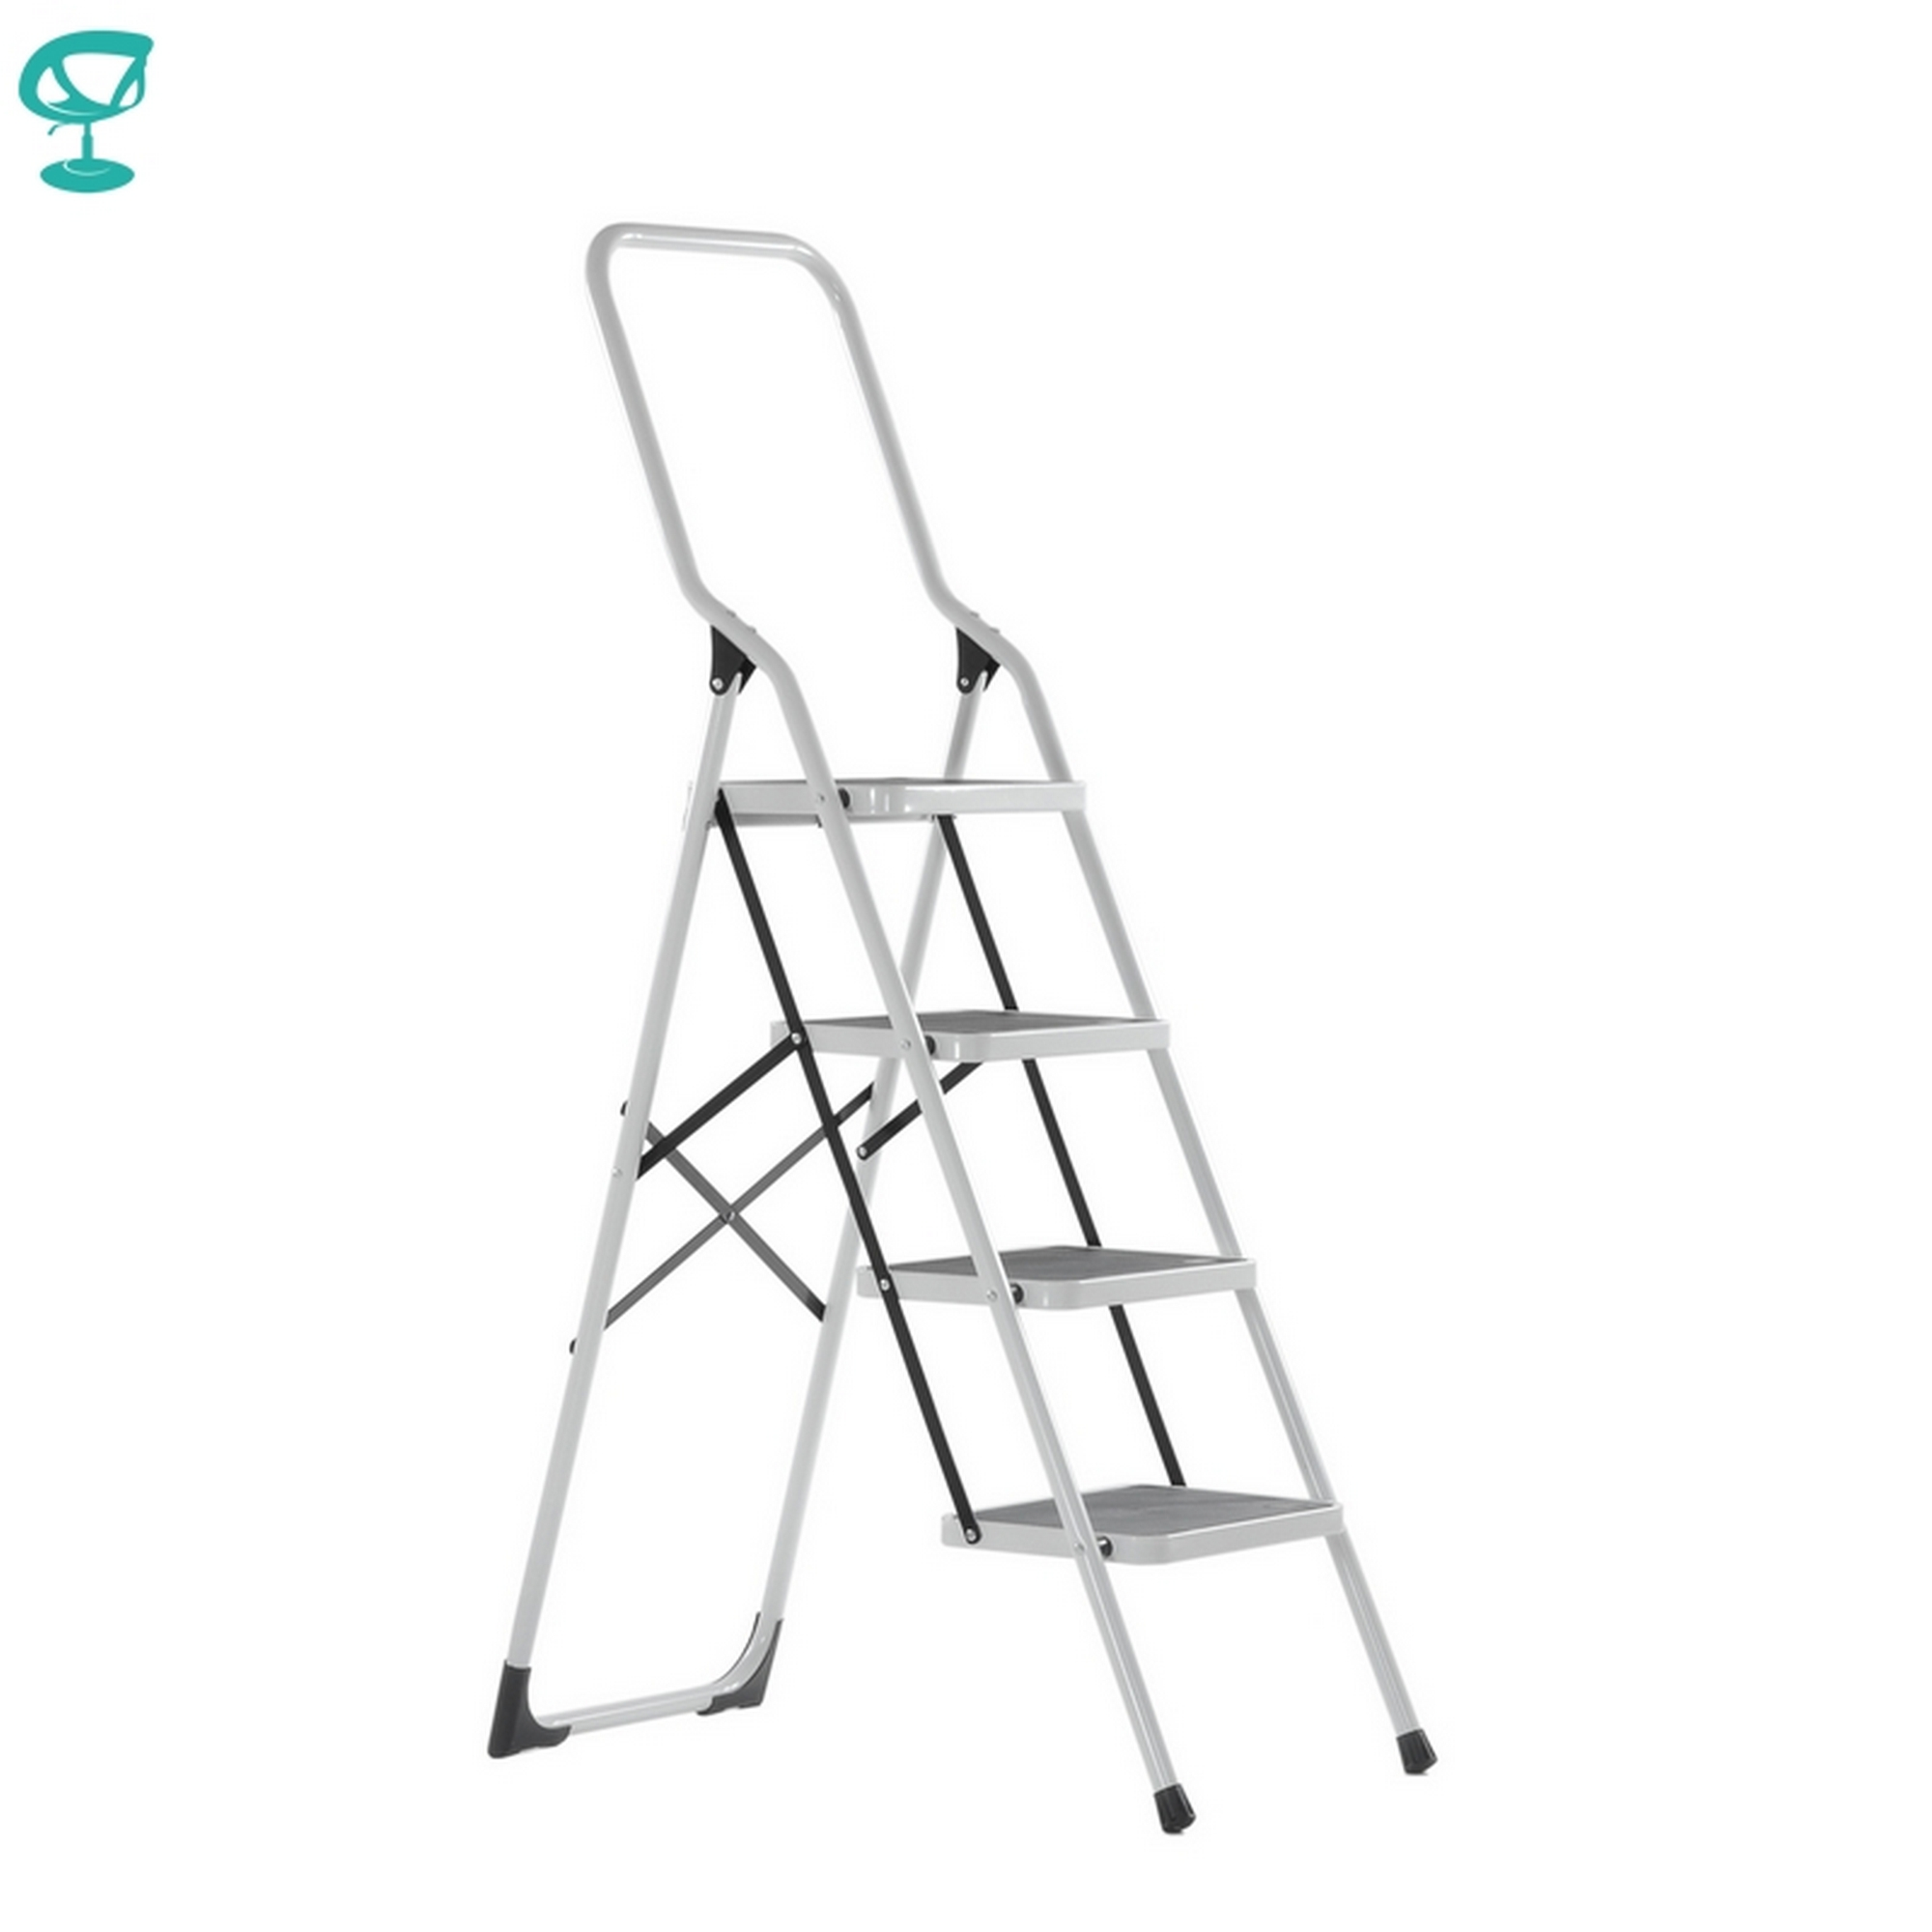 95671 Barneo ST-14 Ladder Steel 4 Stage White Single Side Max Load 150 Kg Free Shipping To Russia